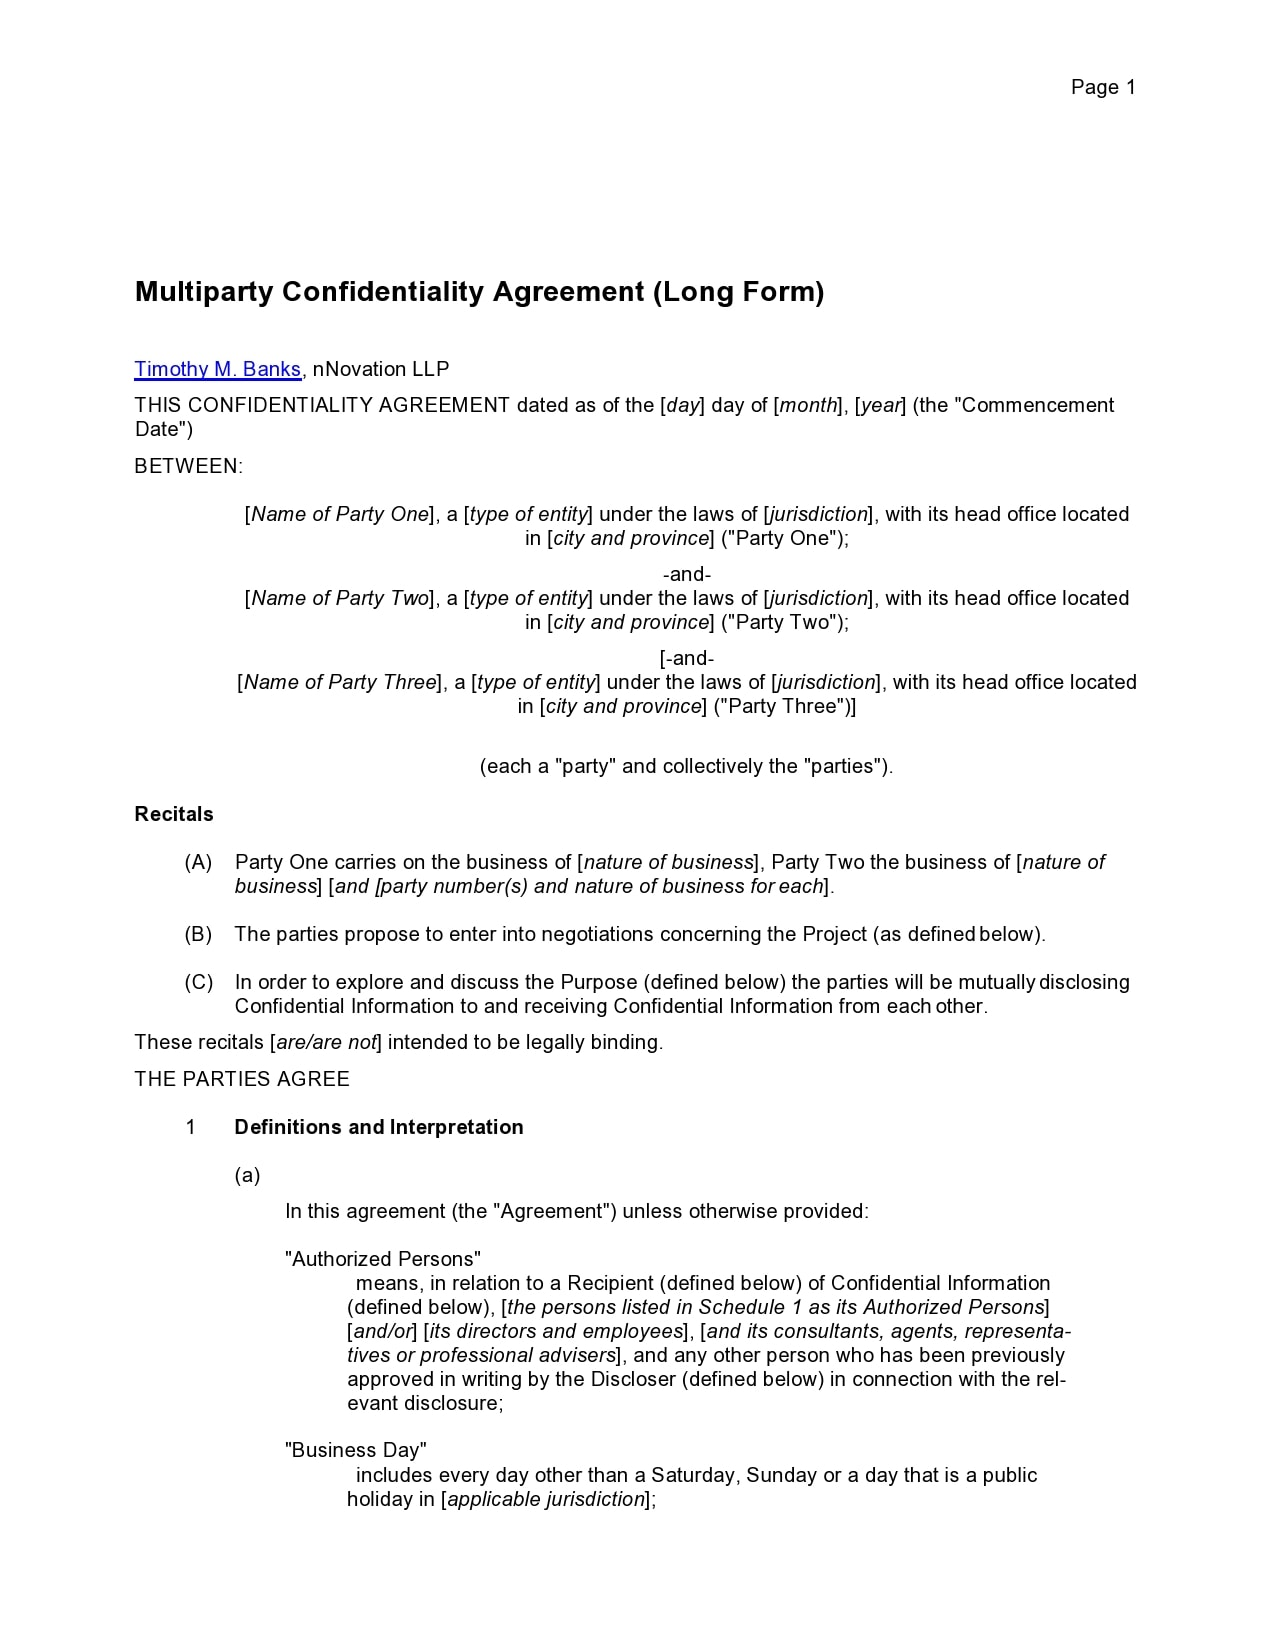 confidentiality agreement template 36